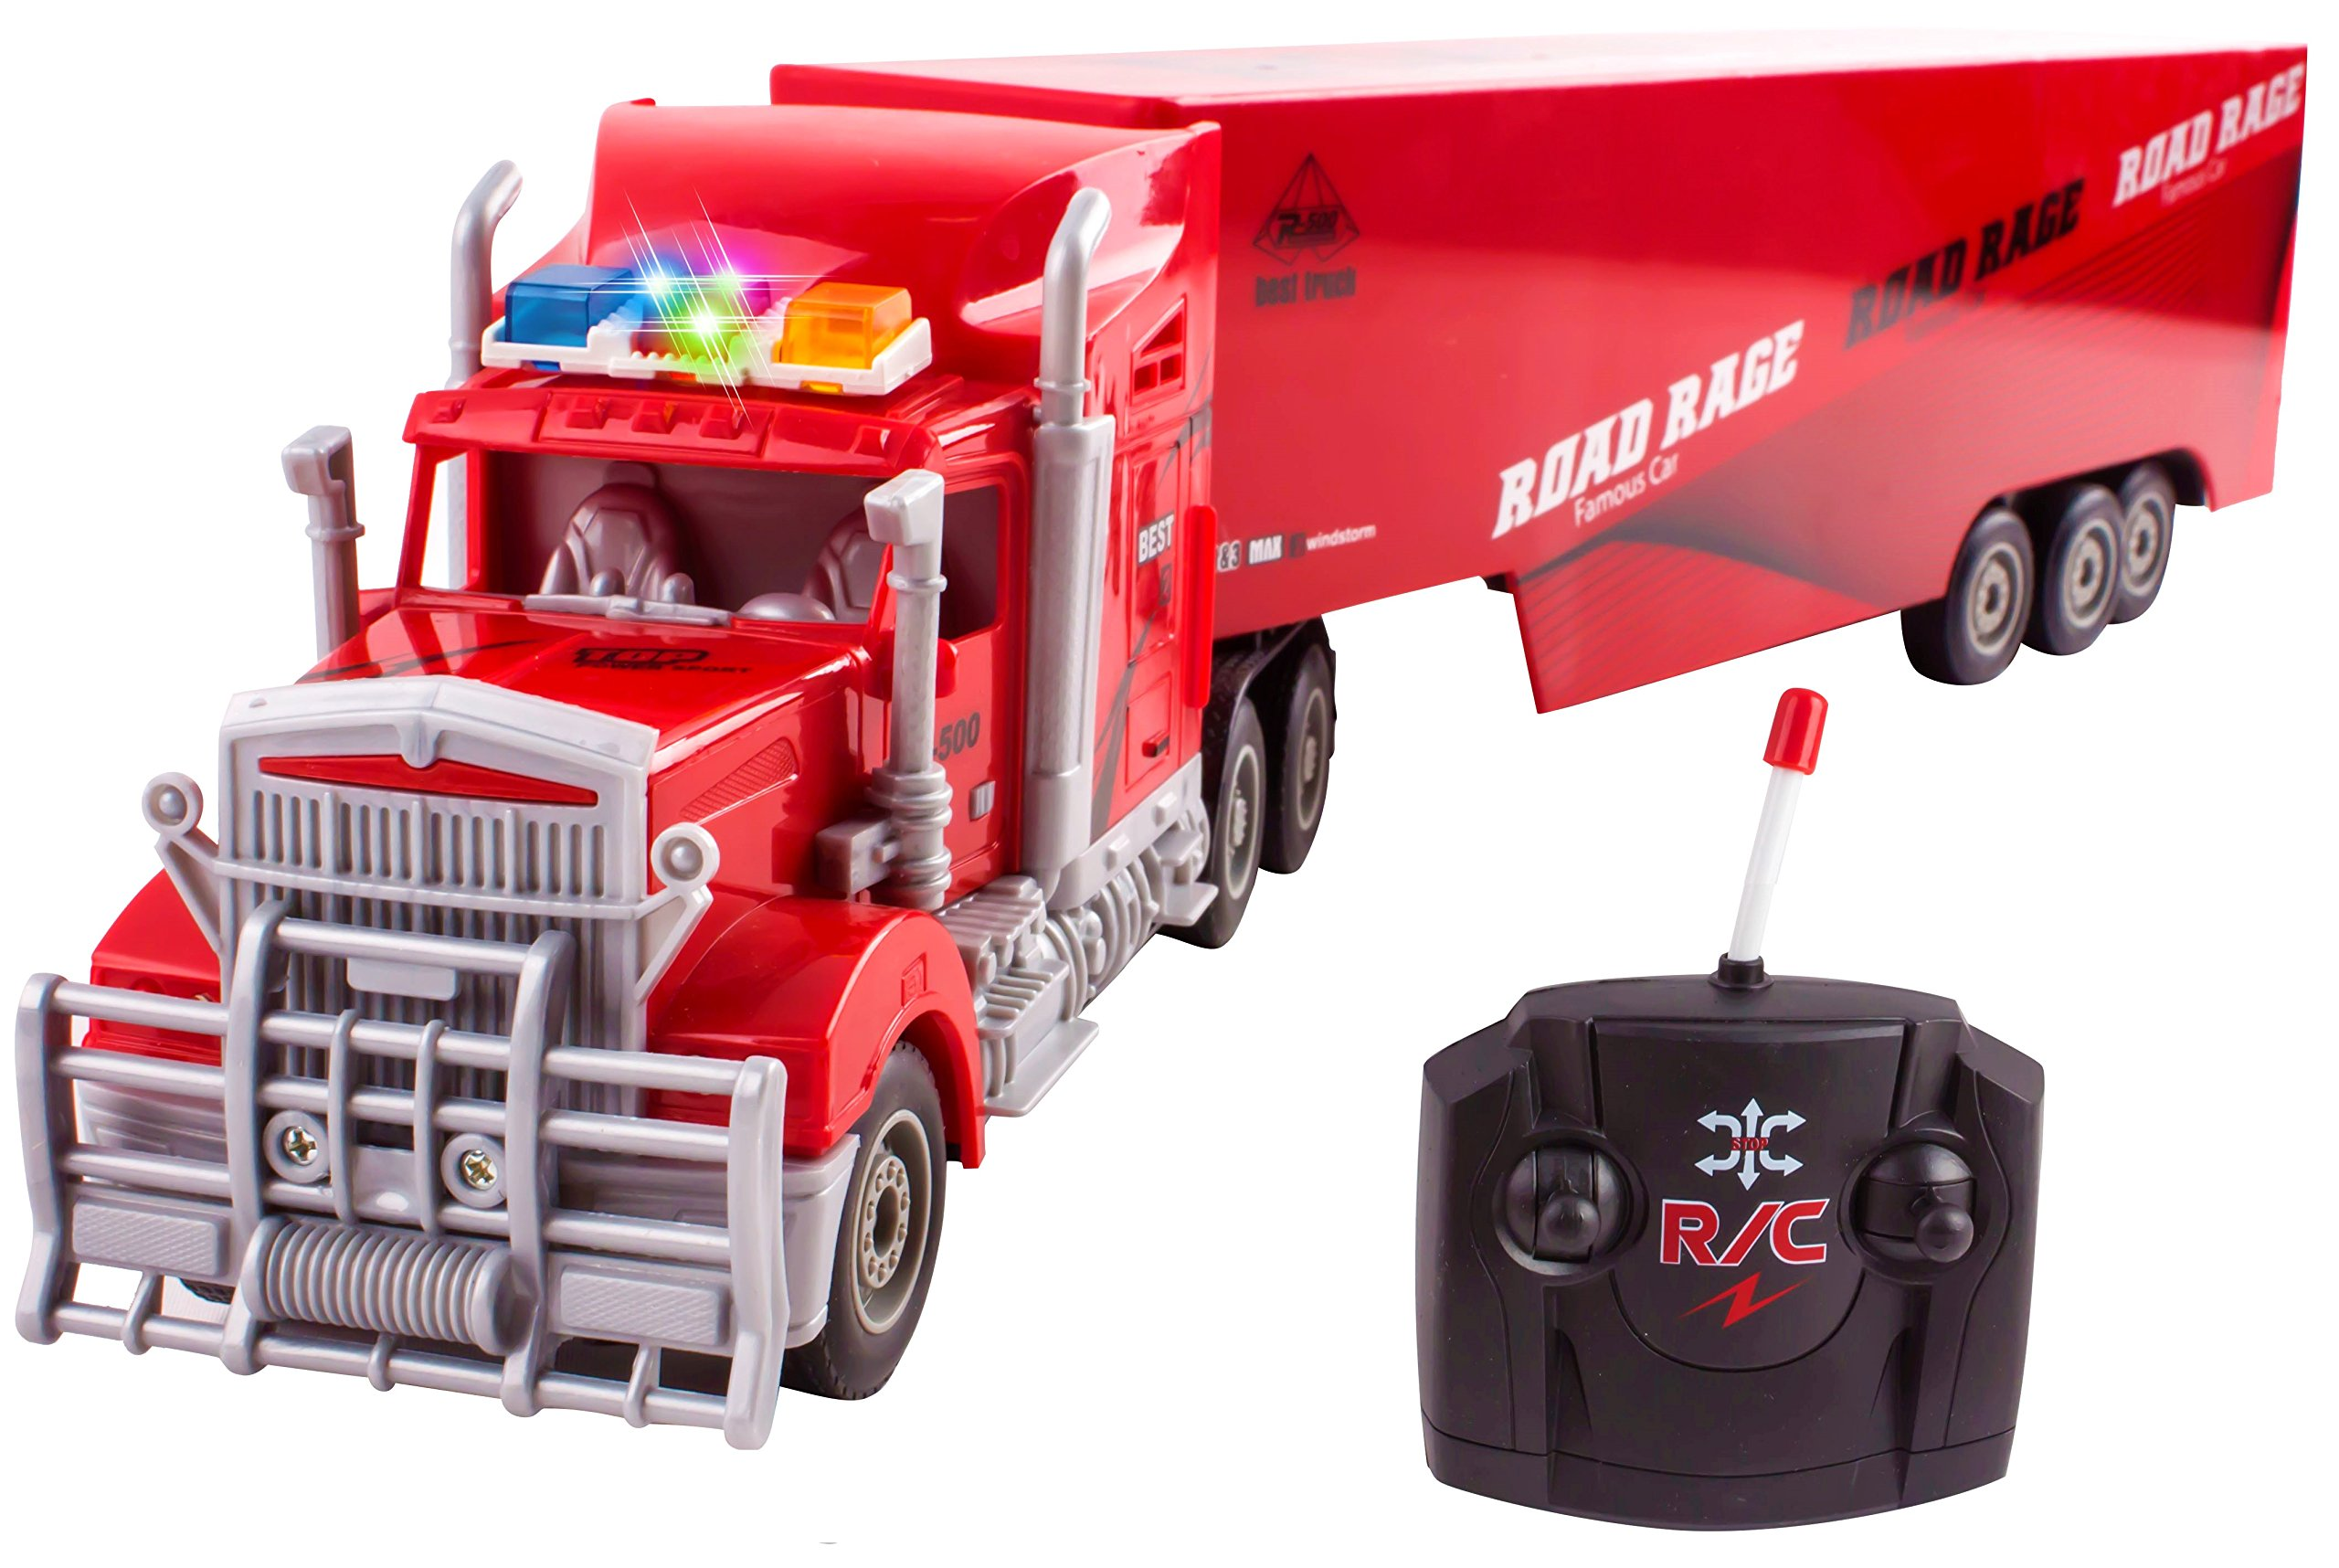 "Toy Semi Truck Trailer 23"" Electric Hauler Remote Control RC Transporter Truck Ready To Run Full Cargo Big Rig (Red)"